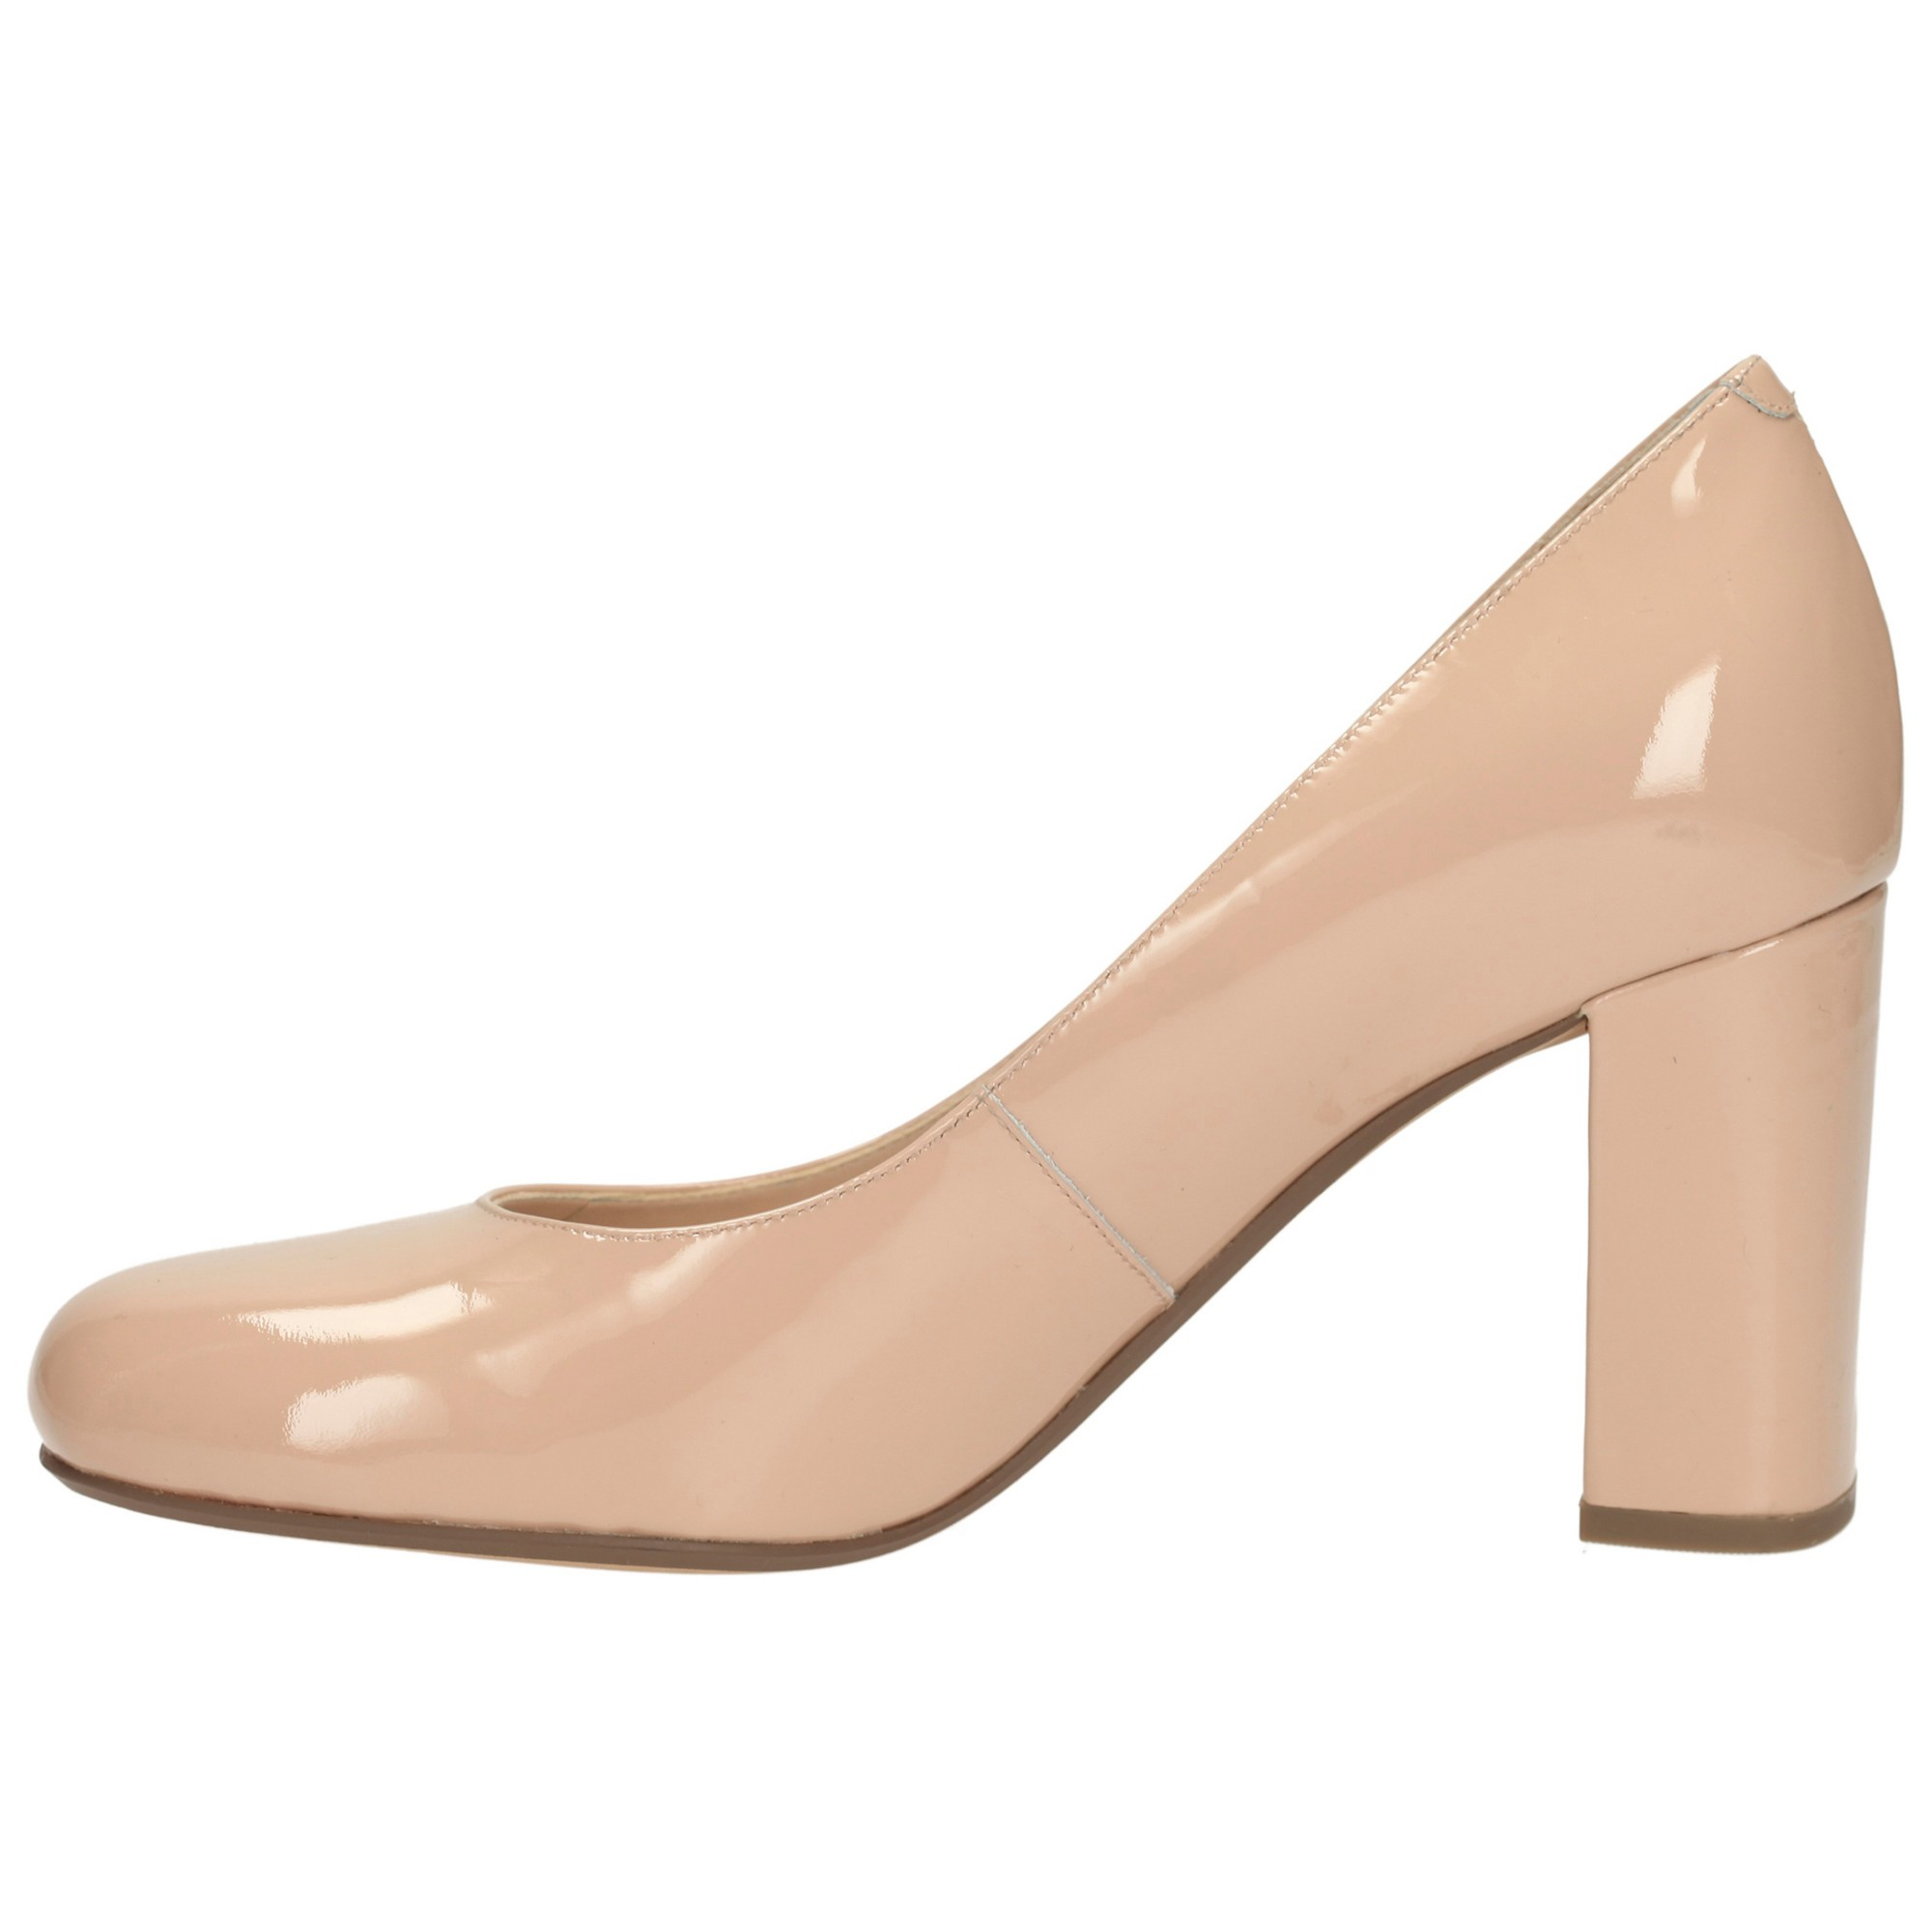 Nude Block Heel Shoes - Is Heel